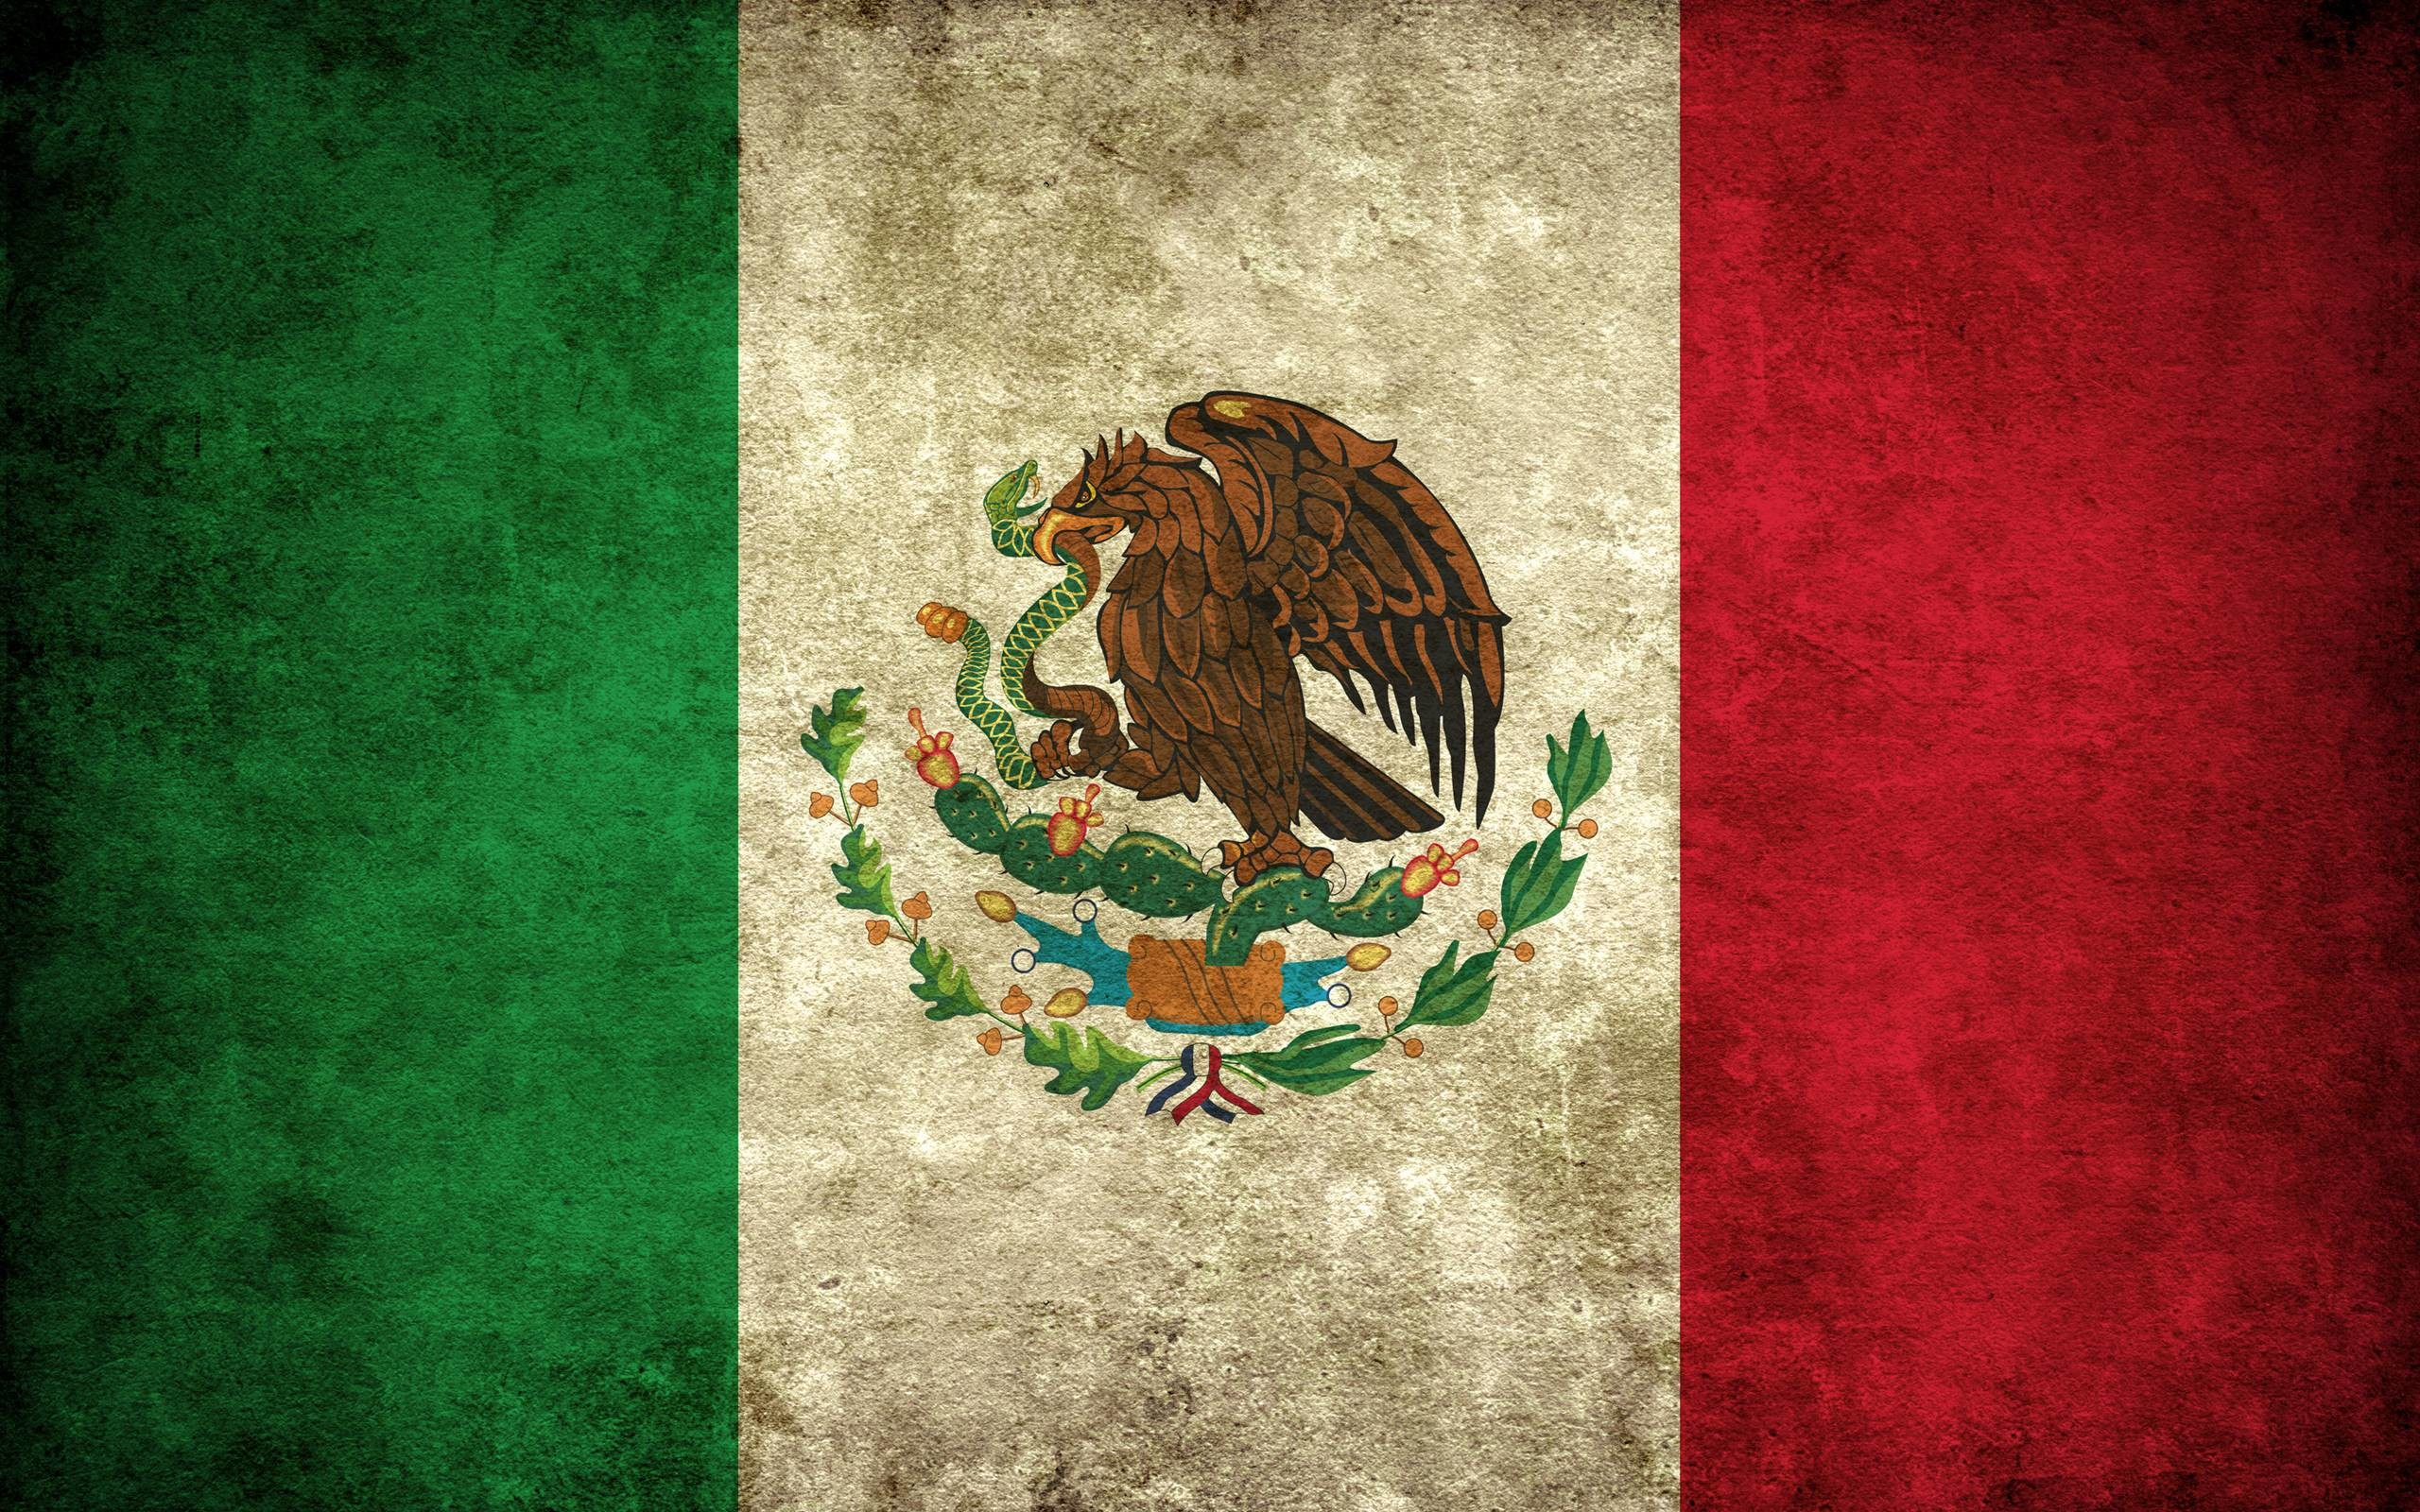 Mexico Flag Wallpaper 54 images 2560x1600